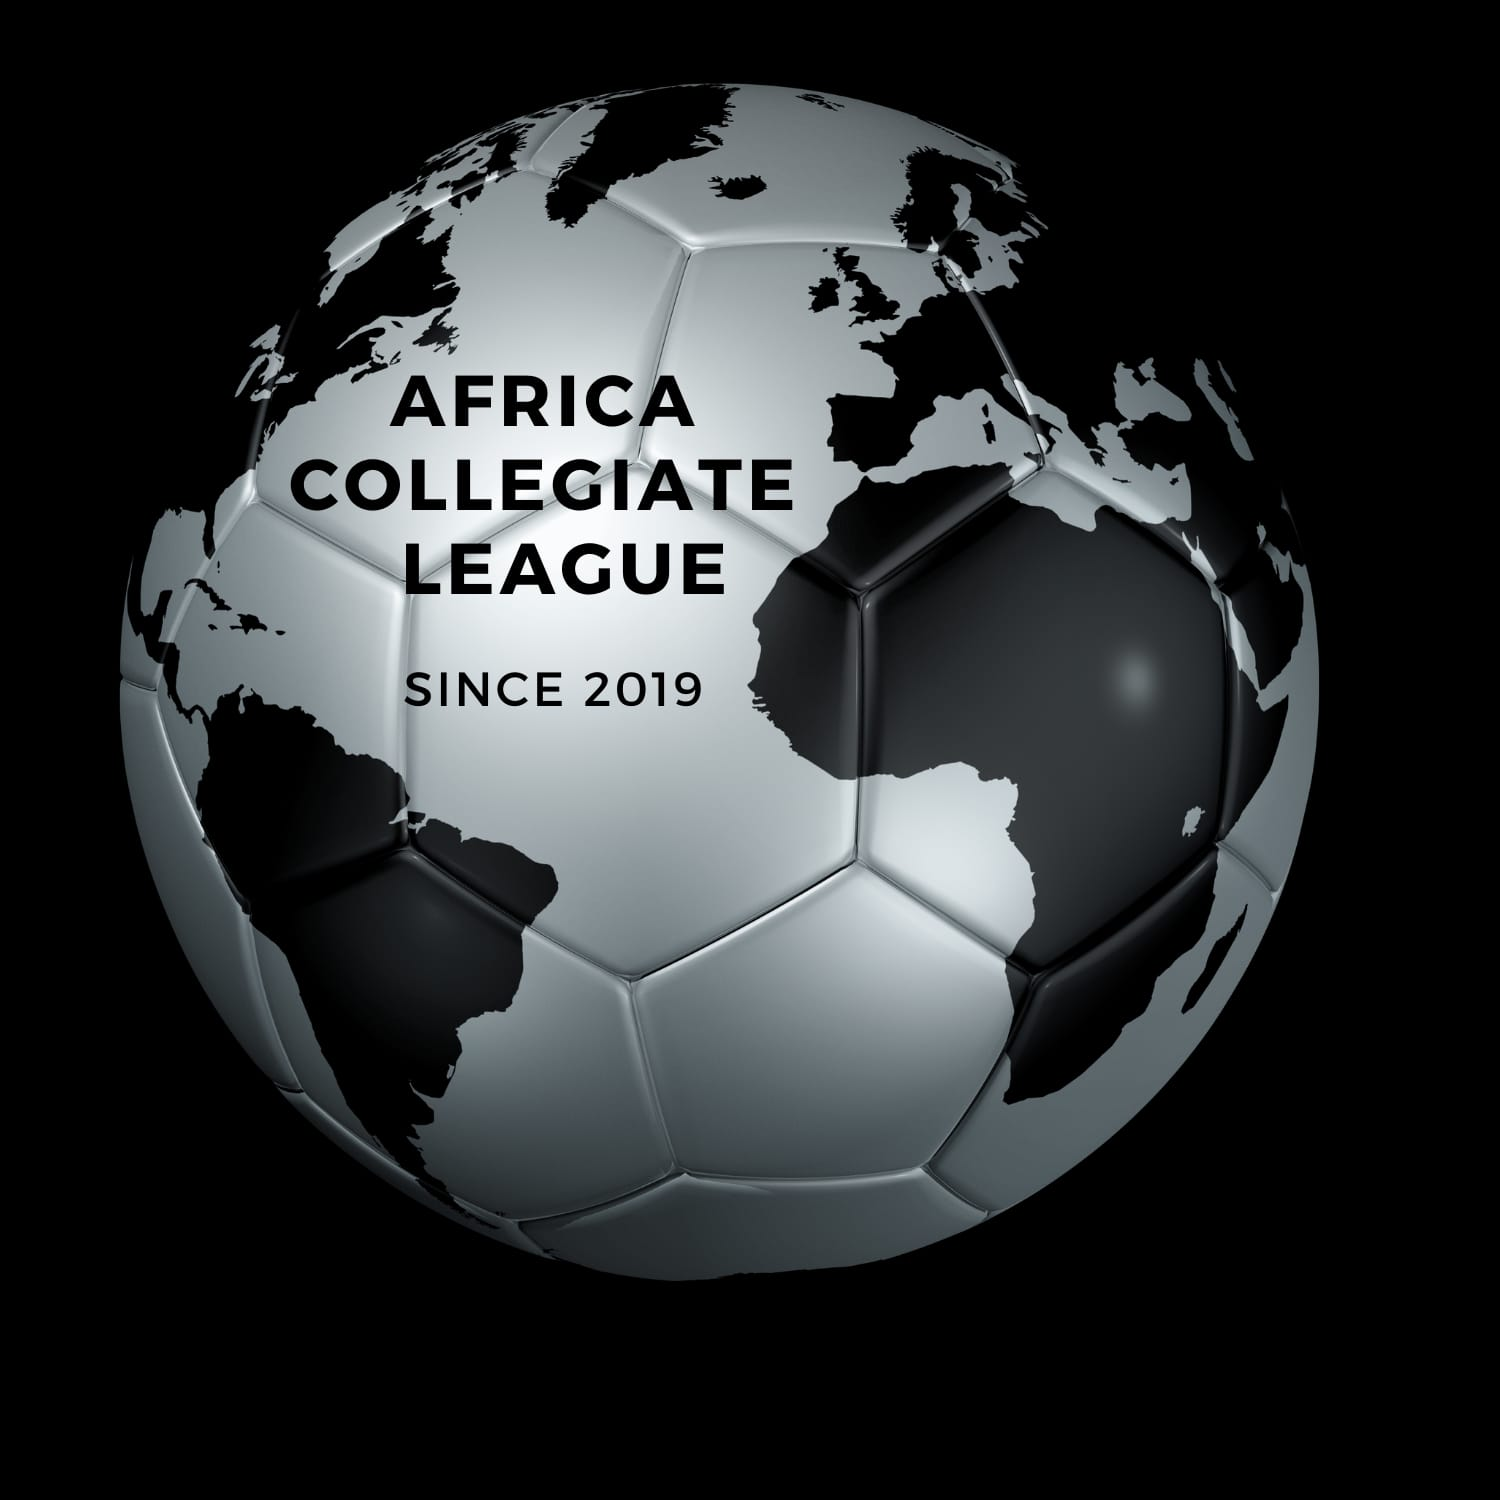 African Collegiate Sports League: Africa Sports Ventures Group to Stage Maiden Edition in 2020